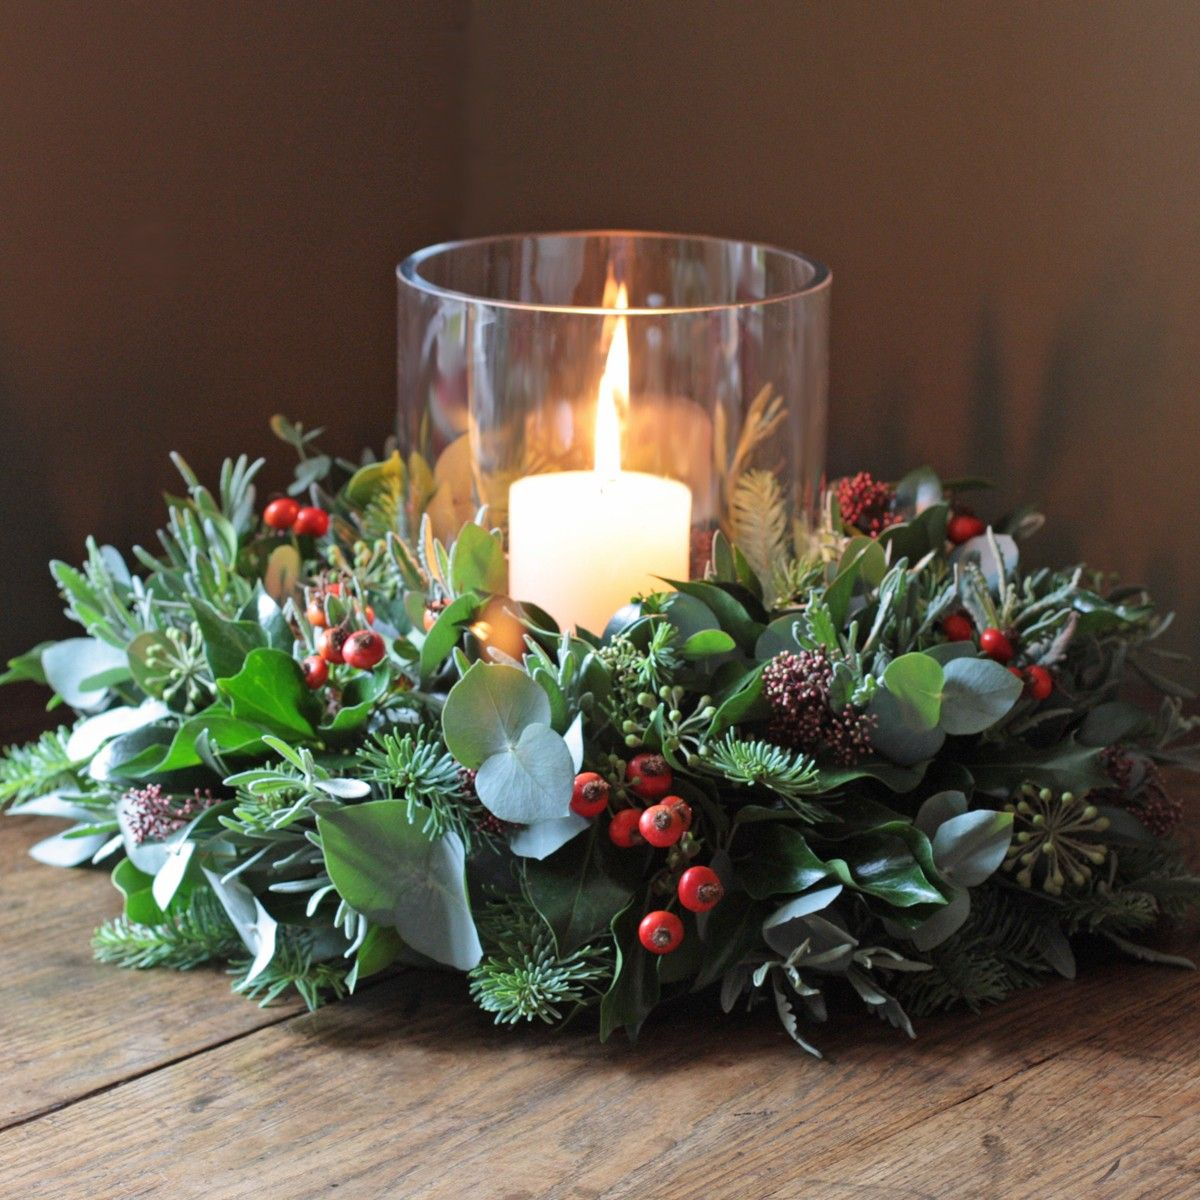 Wreath With Candle for Christmas Healthy Inside and